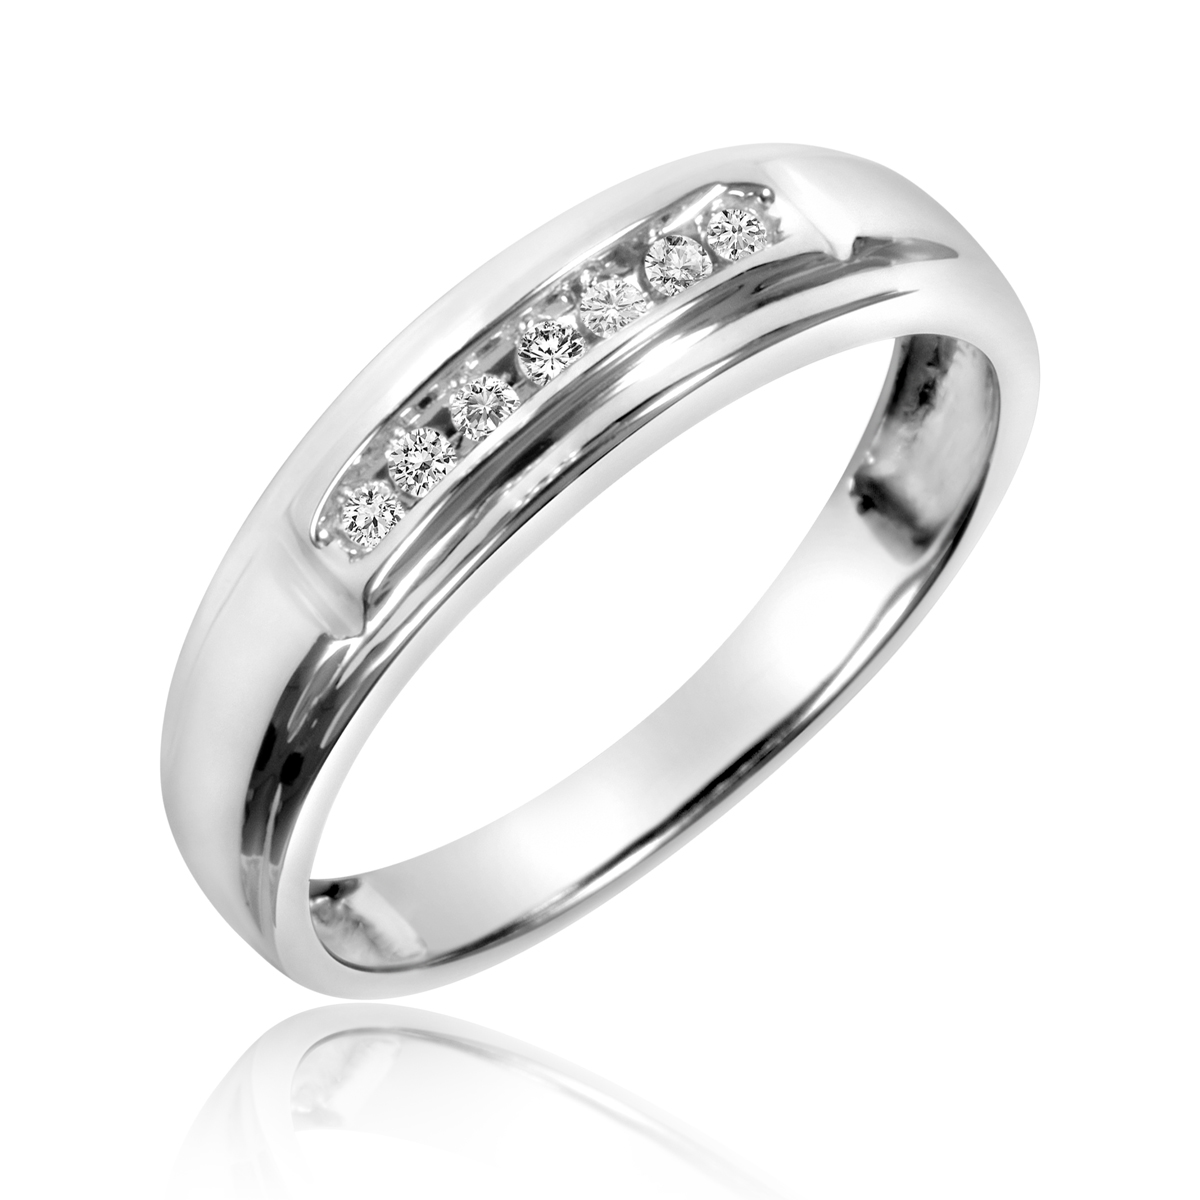 tw diamond trio matching wedding ring set 10k white gold my trio rings bt518w10k - Wedding Rings His And Hers Matching Sets